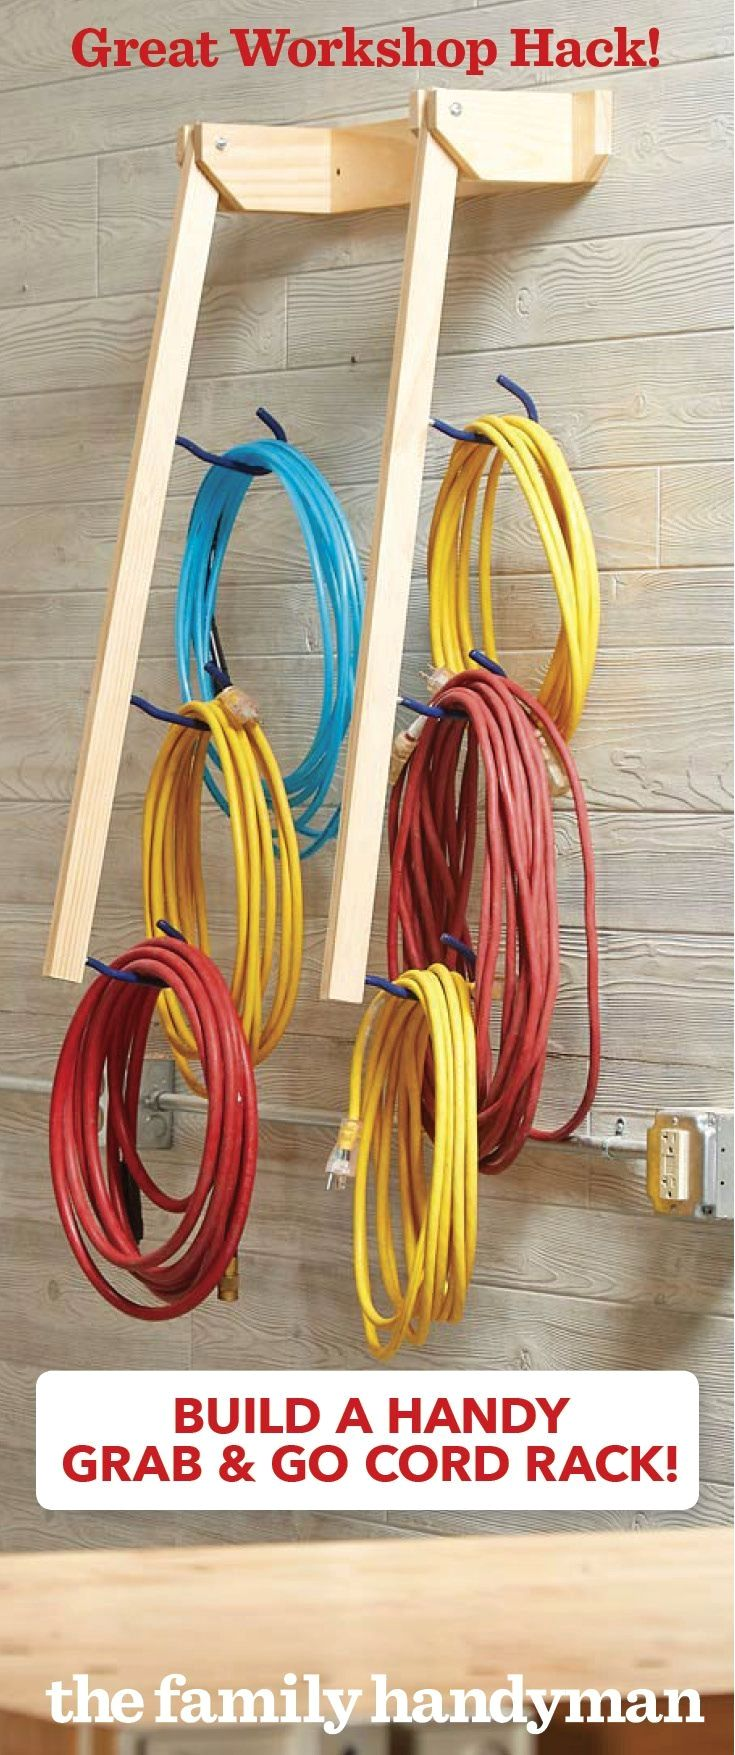 New Garage Organization Ideas Click The Image For Lots Of Diy Electrical Wiring Shed Storage Garagestorage